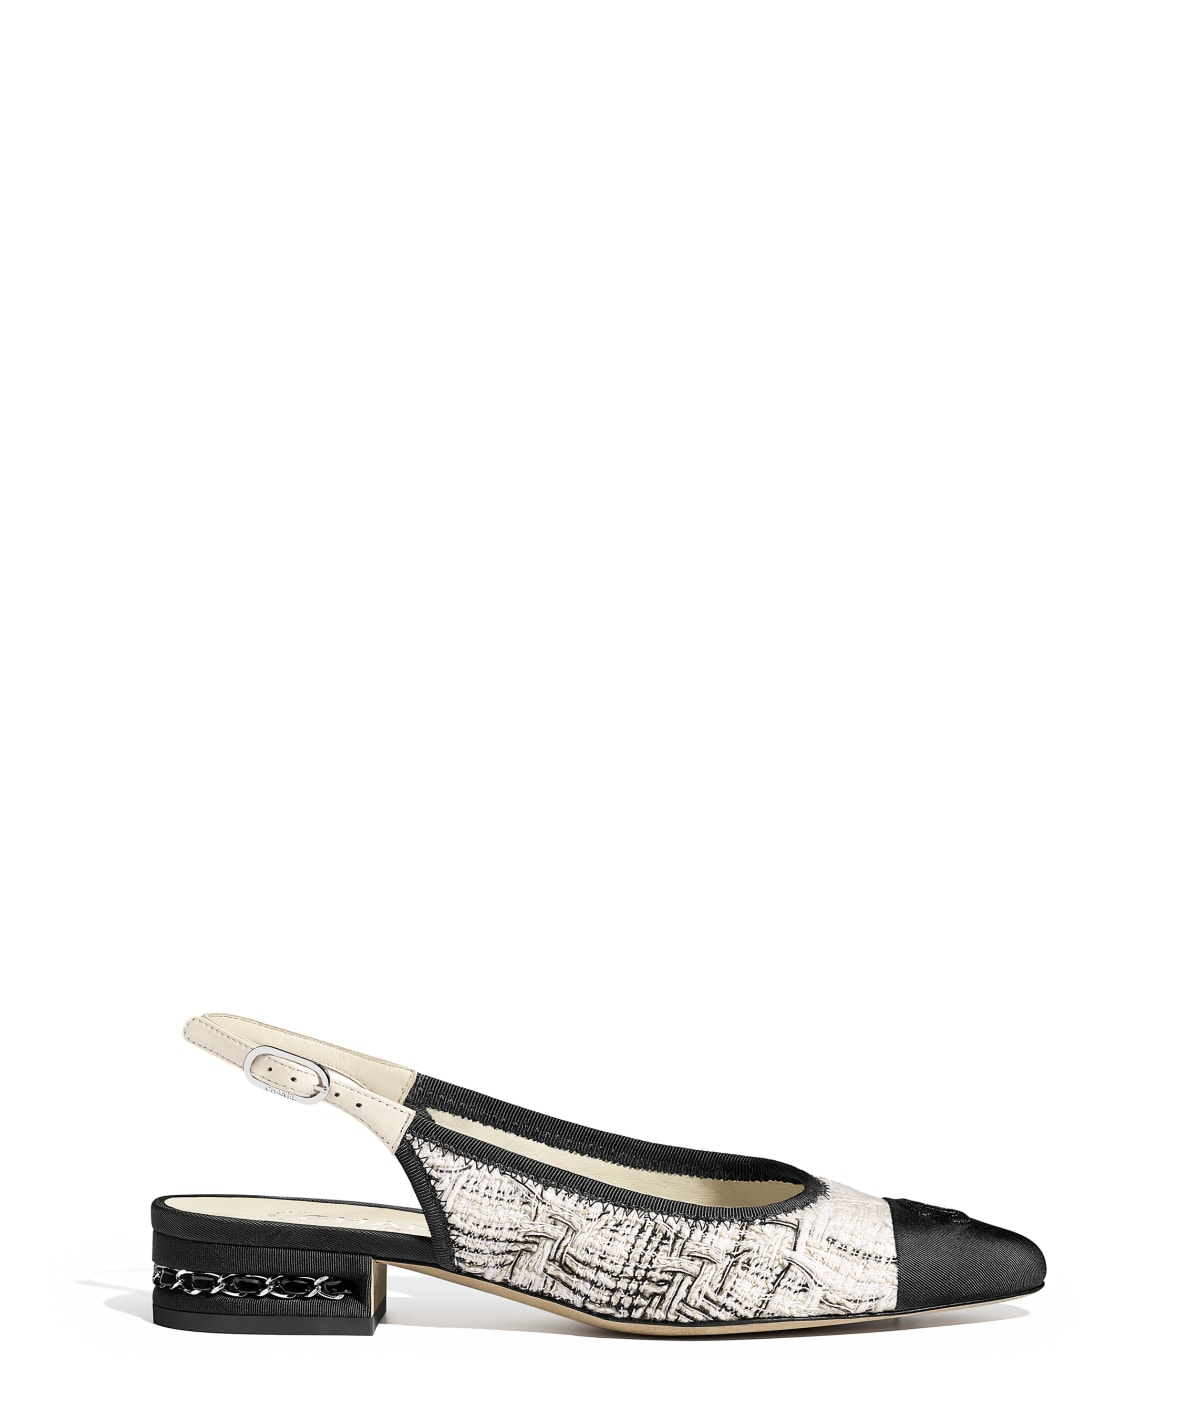 Chanel Tweed Slingback (Similar)